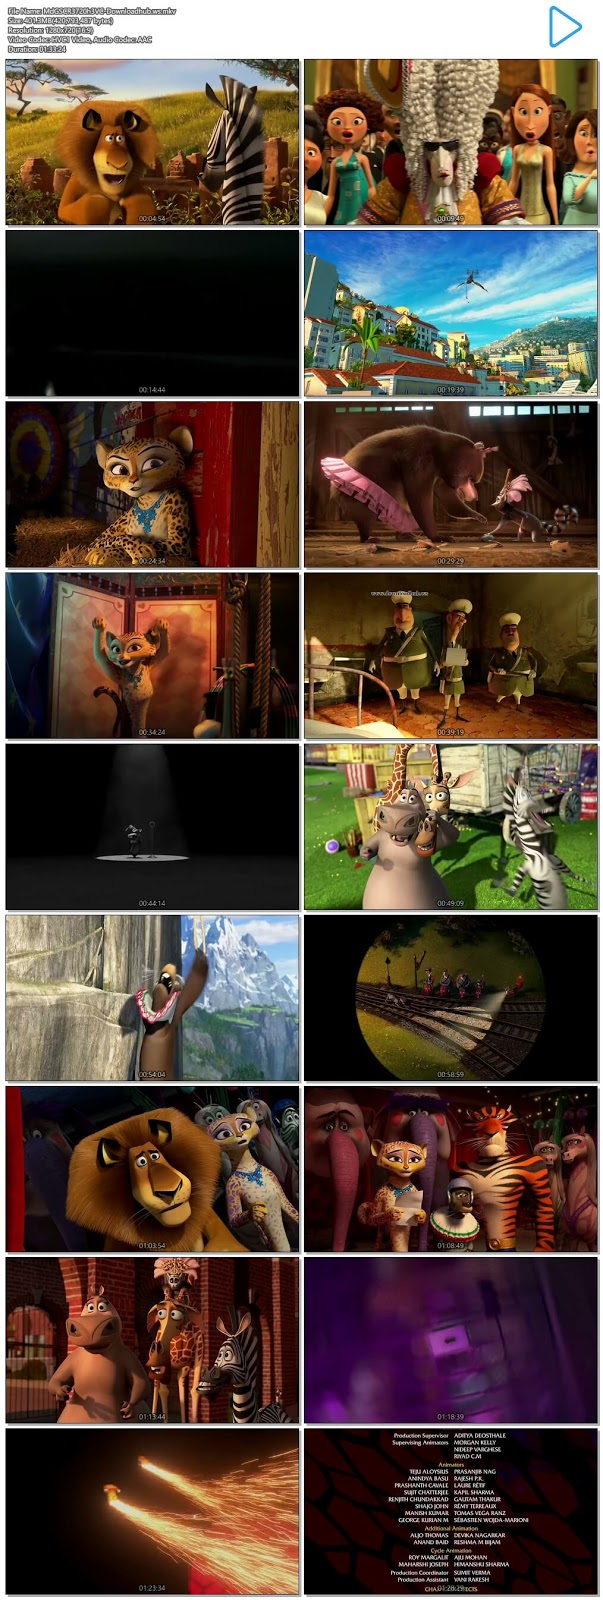 Madagascar 3 Europes Most Wanted 2012 Hindi Dual Audio 720p HEVC BluRay Free Download